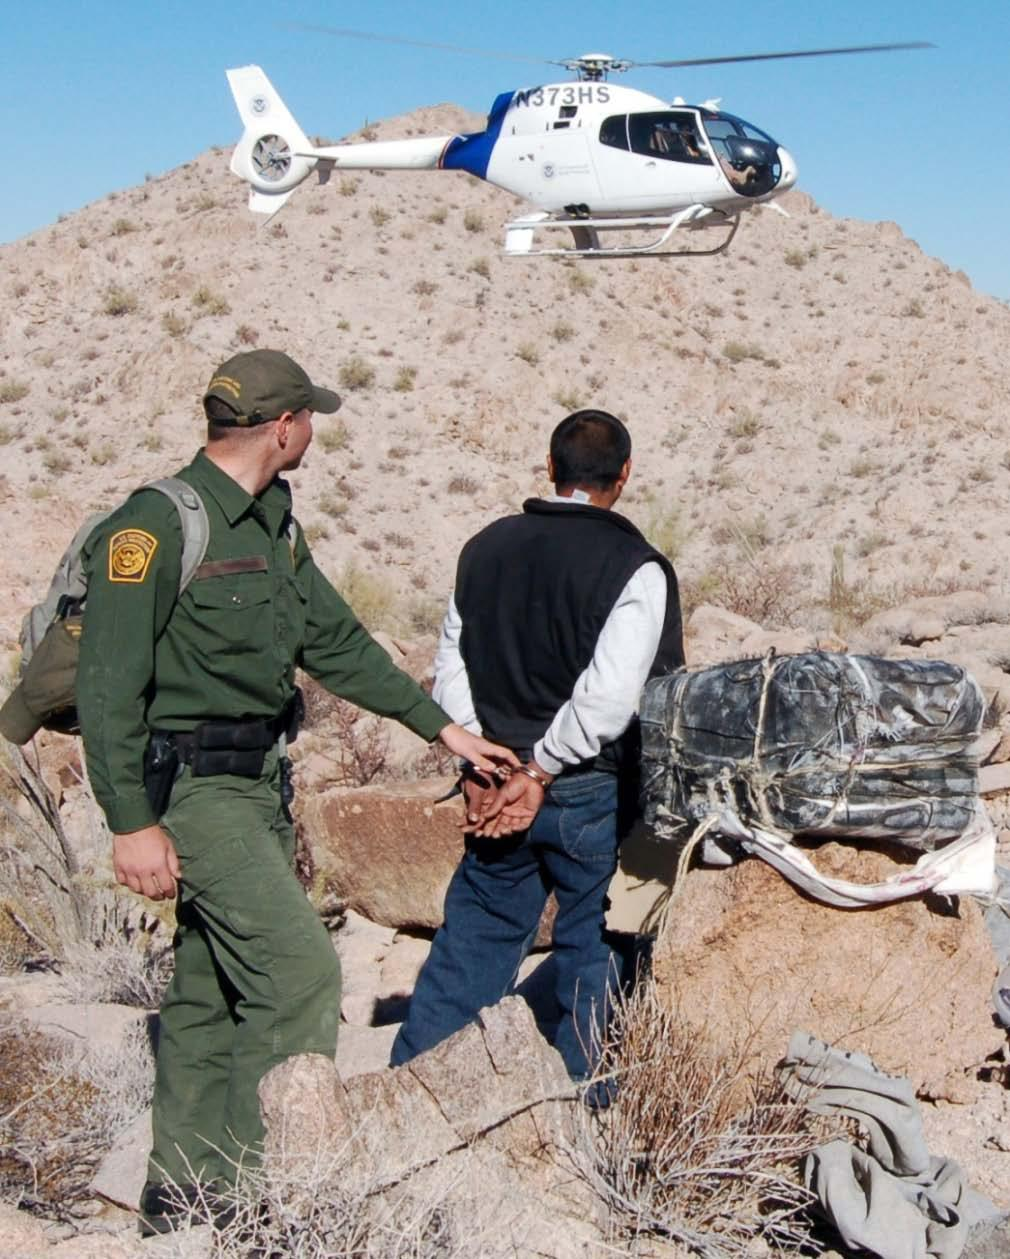 Recent Border Protection Successes 352 million travelers inspected at ports of entry Nationwide Border Patrol apprehensions of illegal aliens decreased to approximately 463,000, a 36 percent